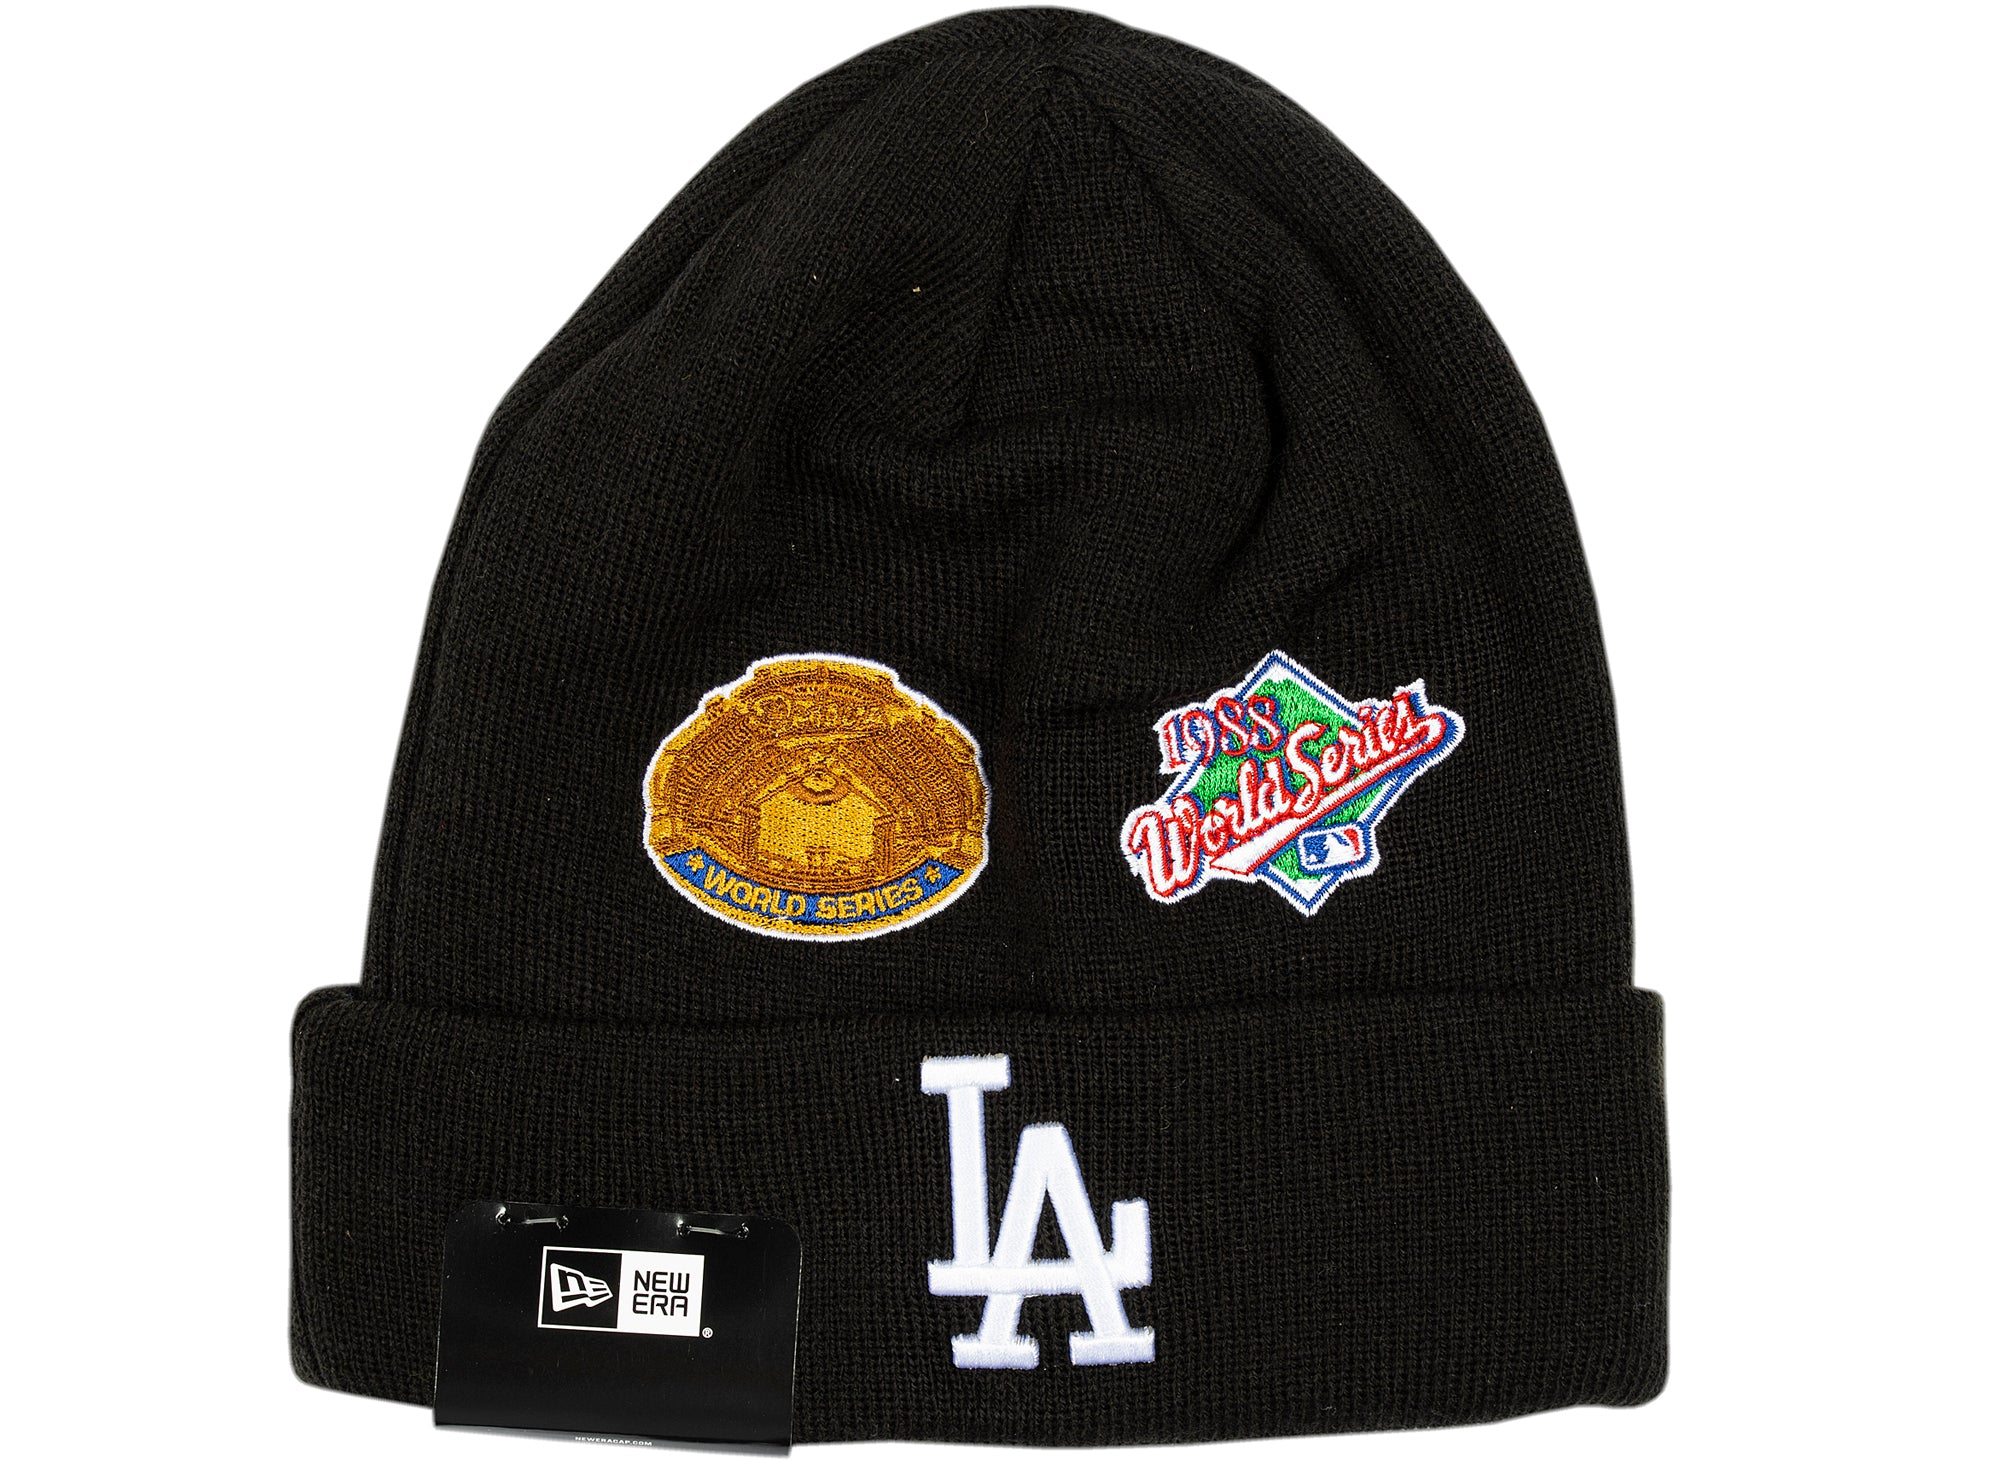 New Era Dodgers Knit Cuff Beanie xld